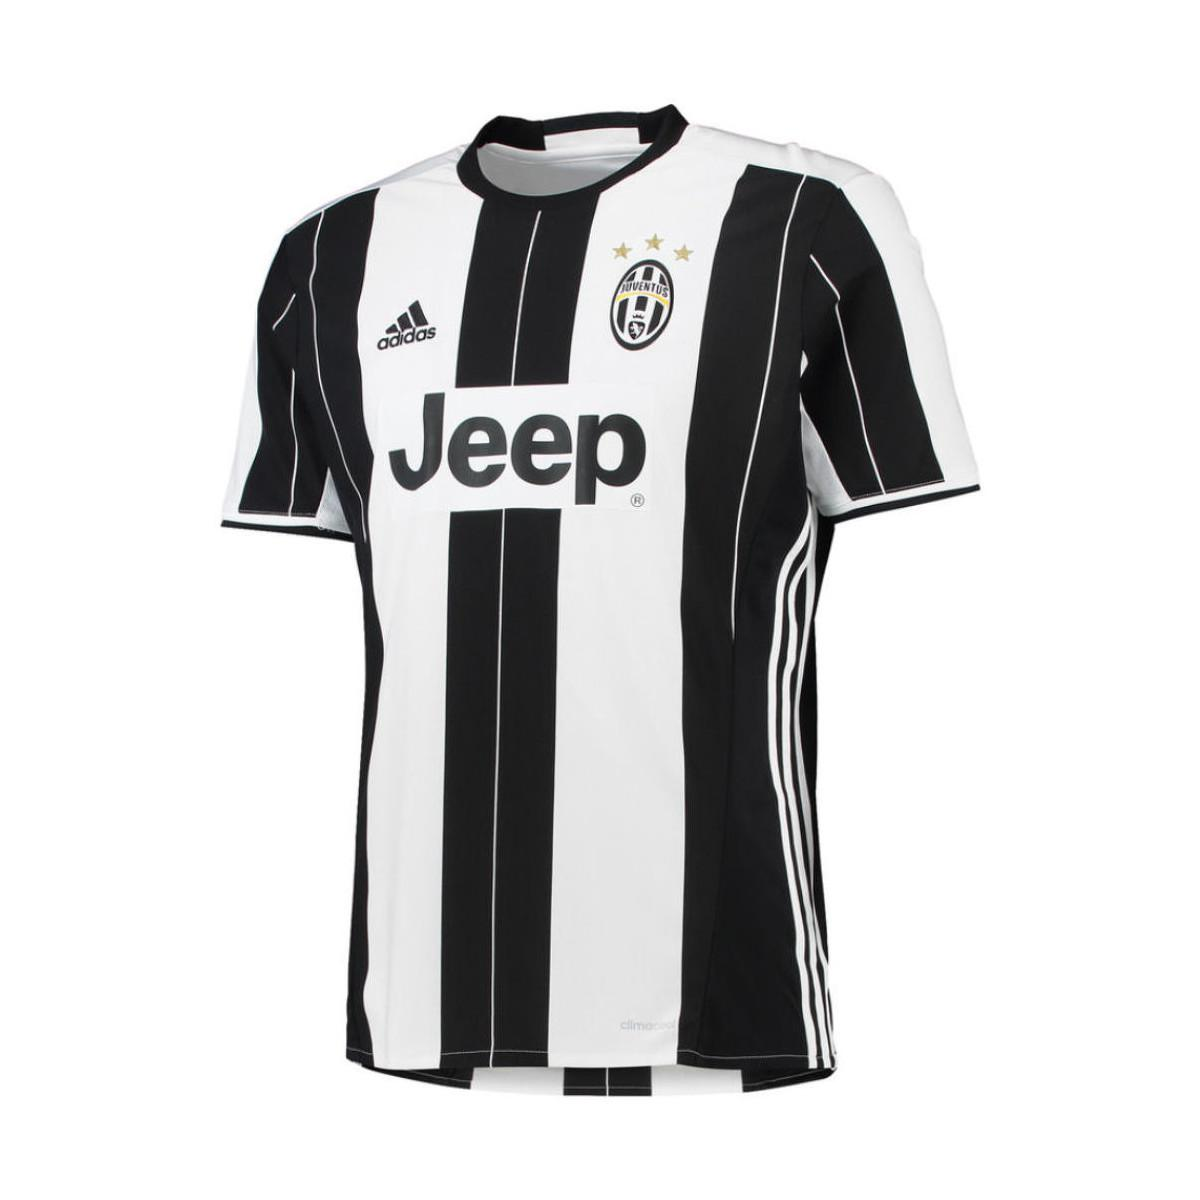 0952bc71c8a adidas 2016-17 Juventus Home Shirt (marchisio 8) Men s T Shirt In ...